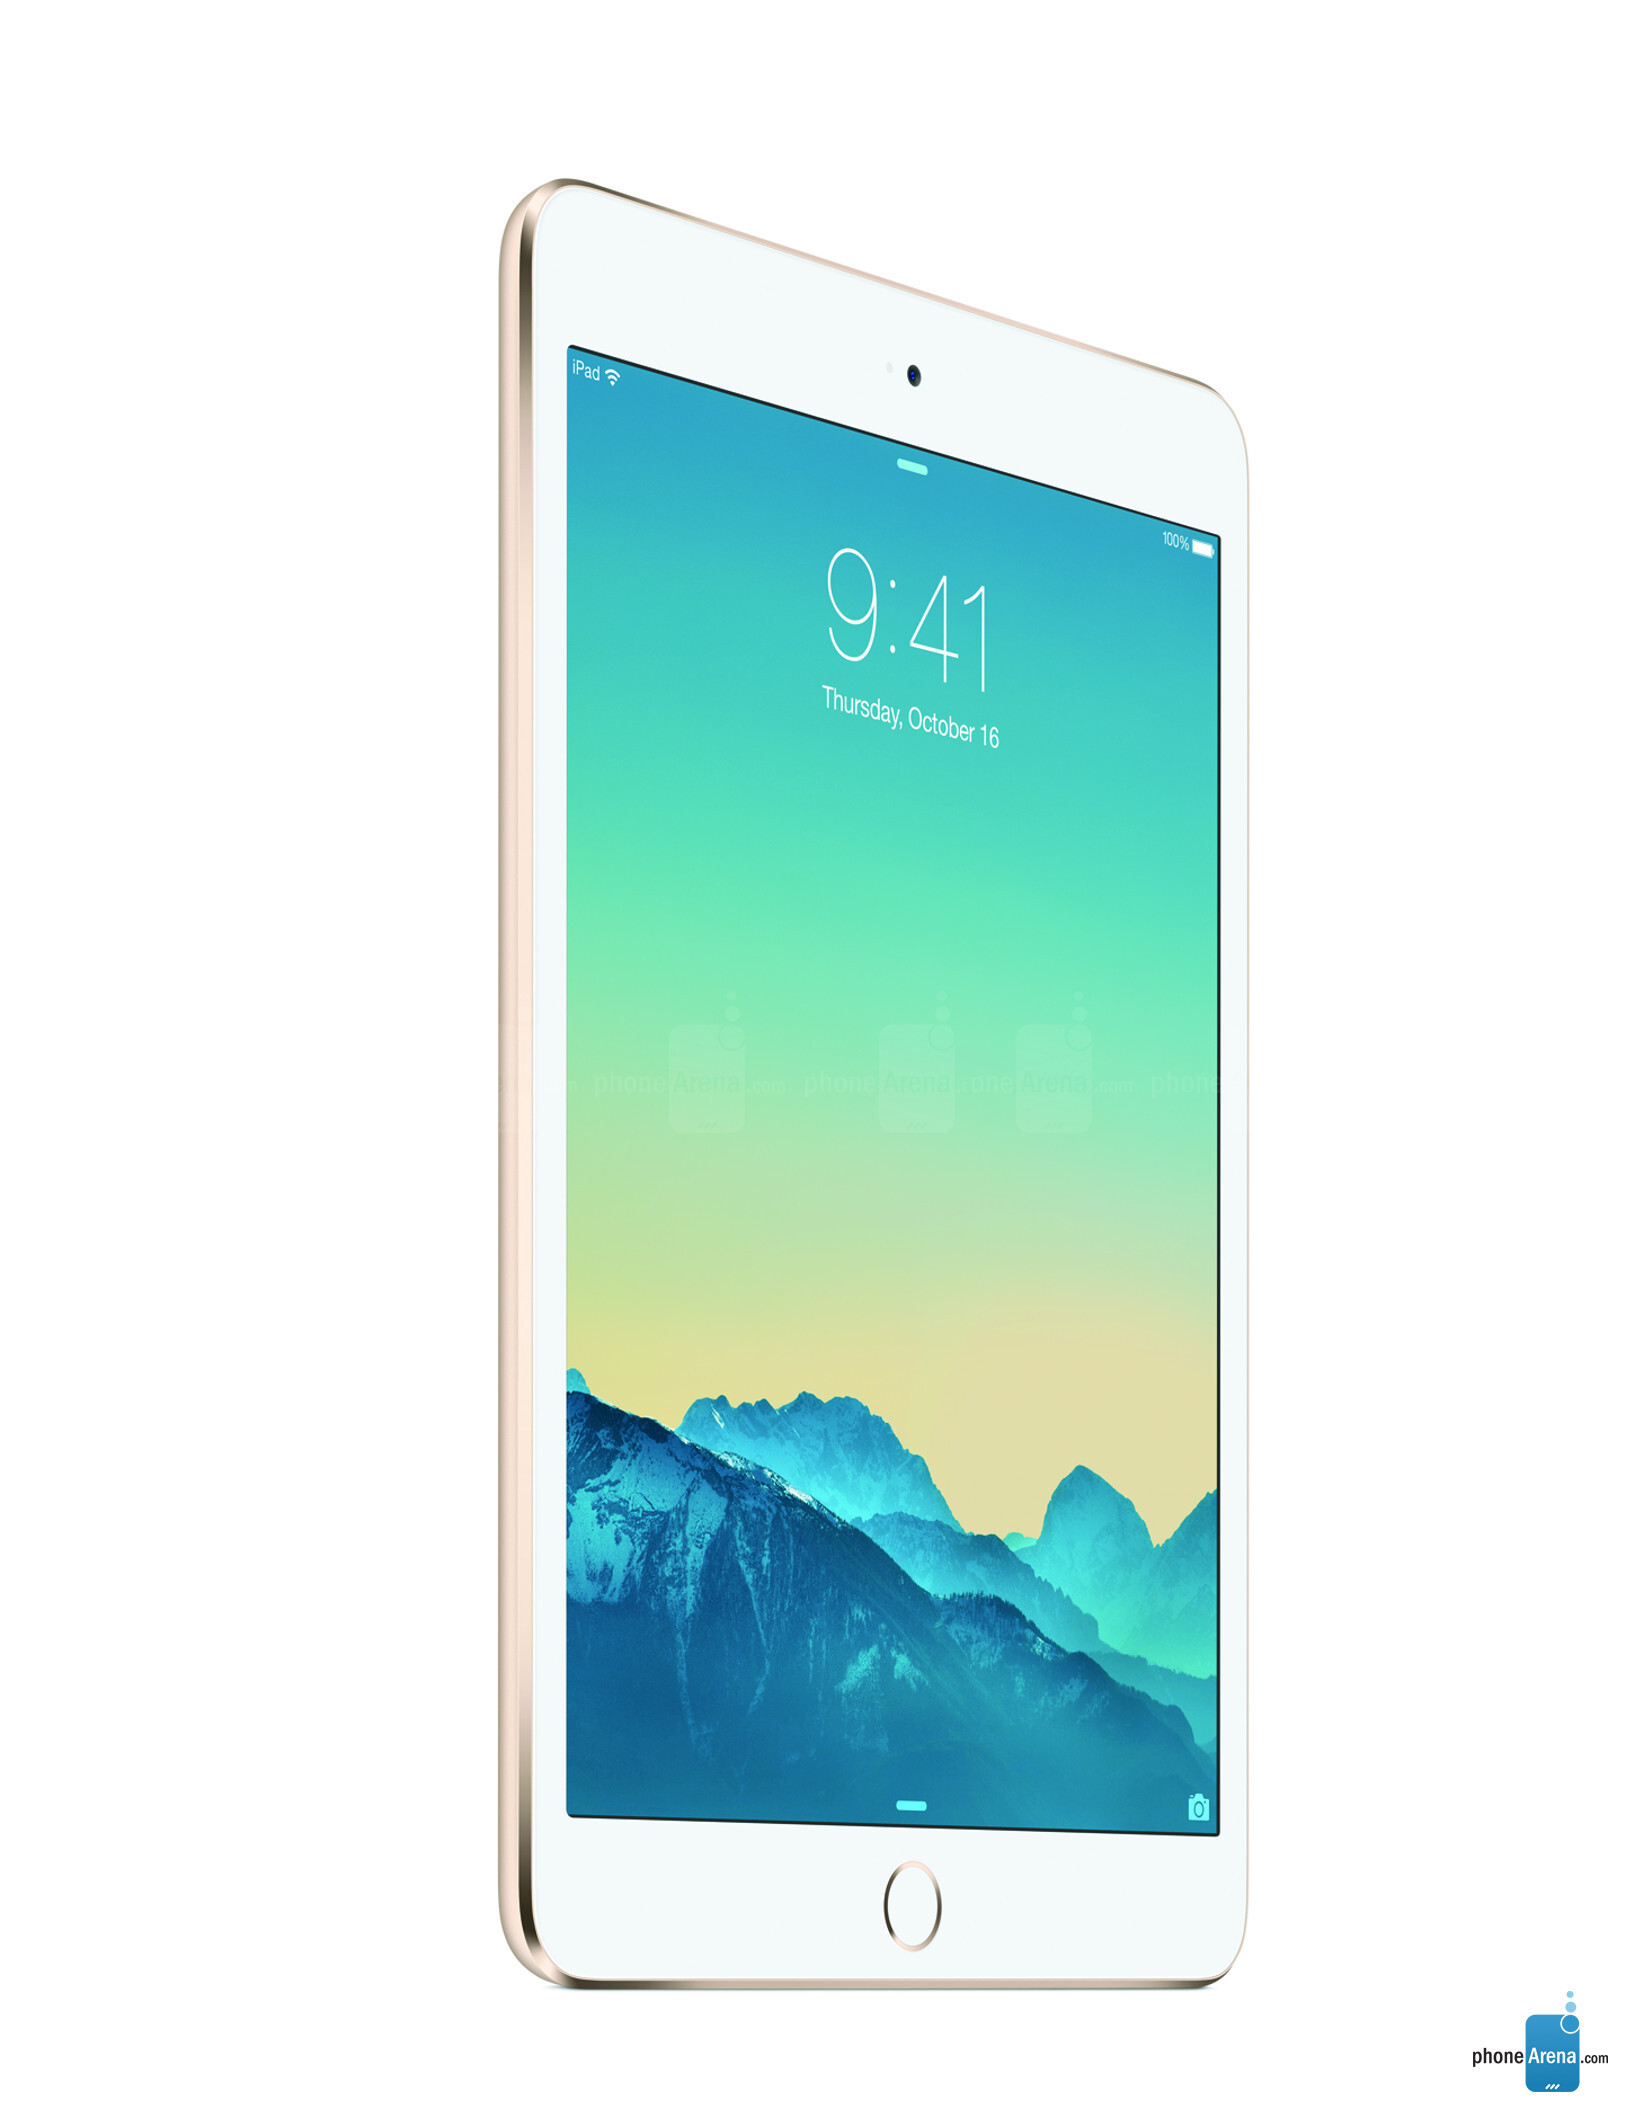 how to find ehich model ipad mini